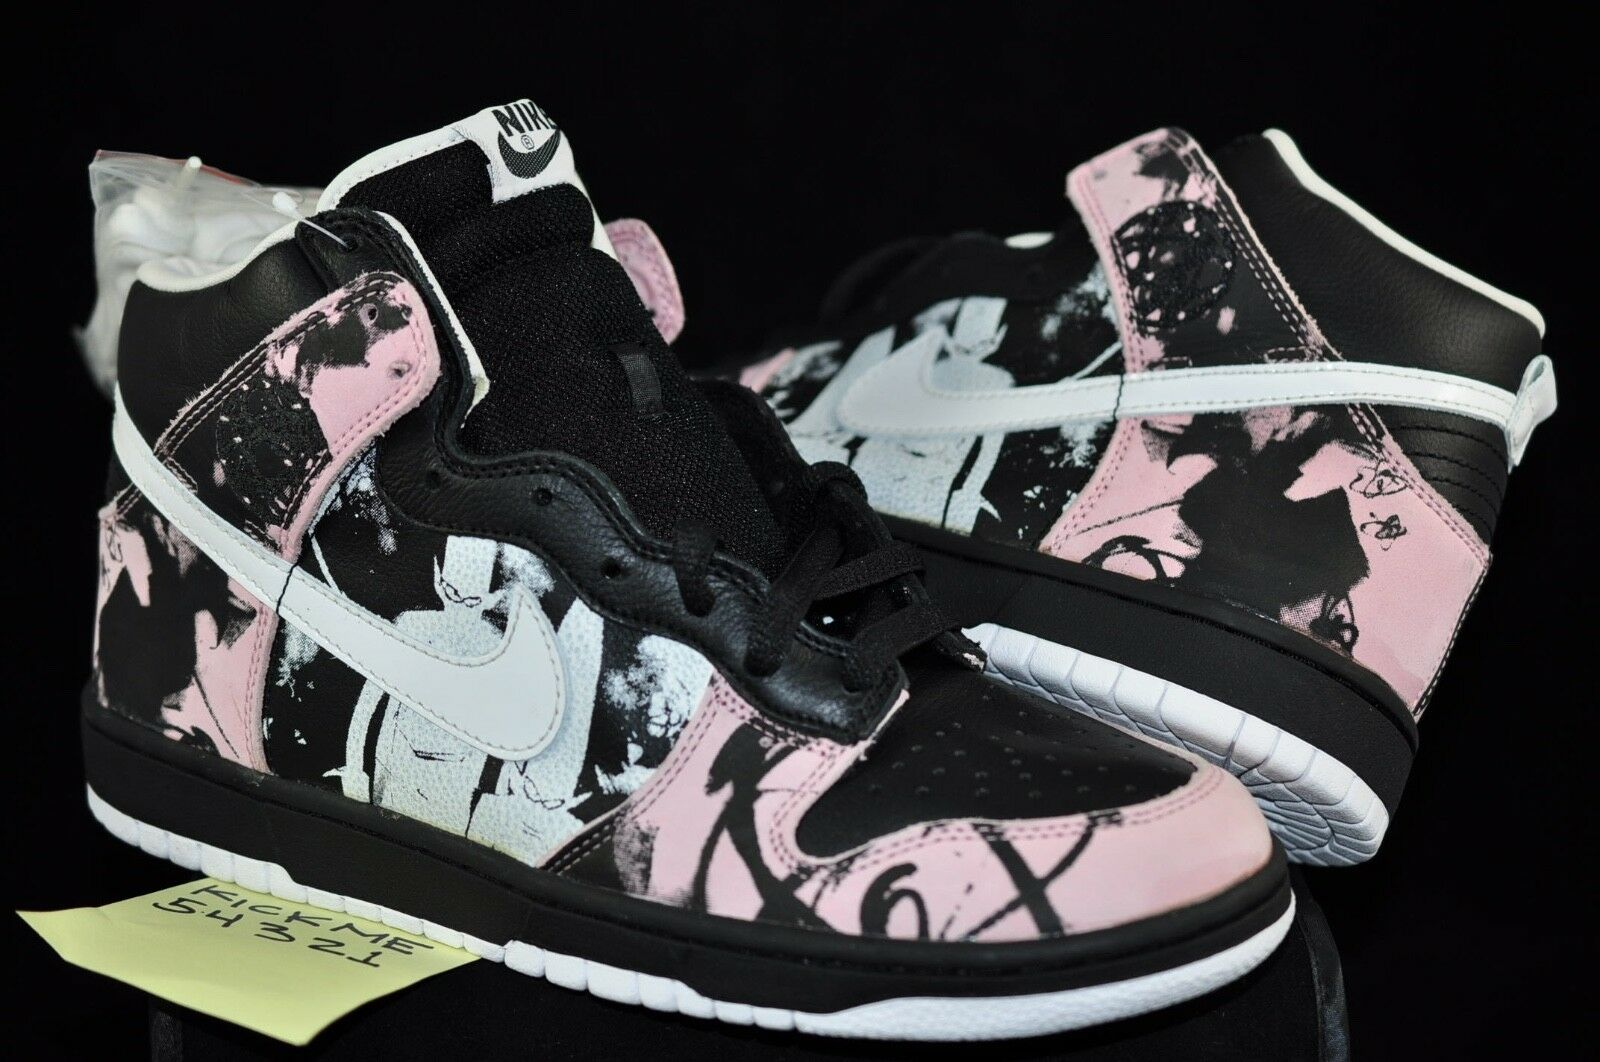 NIKE DUNK HIGH PRO SB UNKLE DUNKLE MO WAX JAMES LAVELLE SIZE 9.5 NEW PINK FUTURA